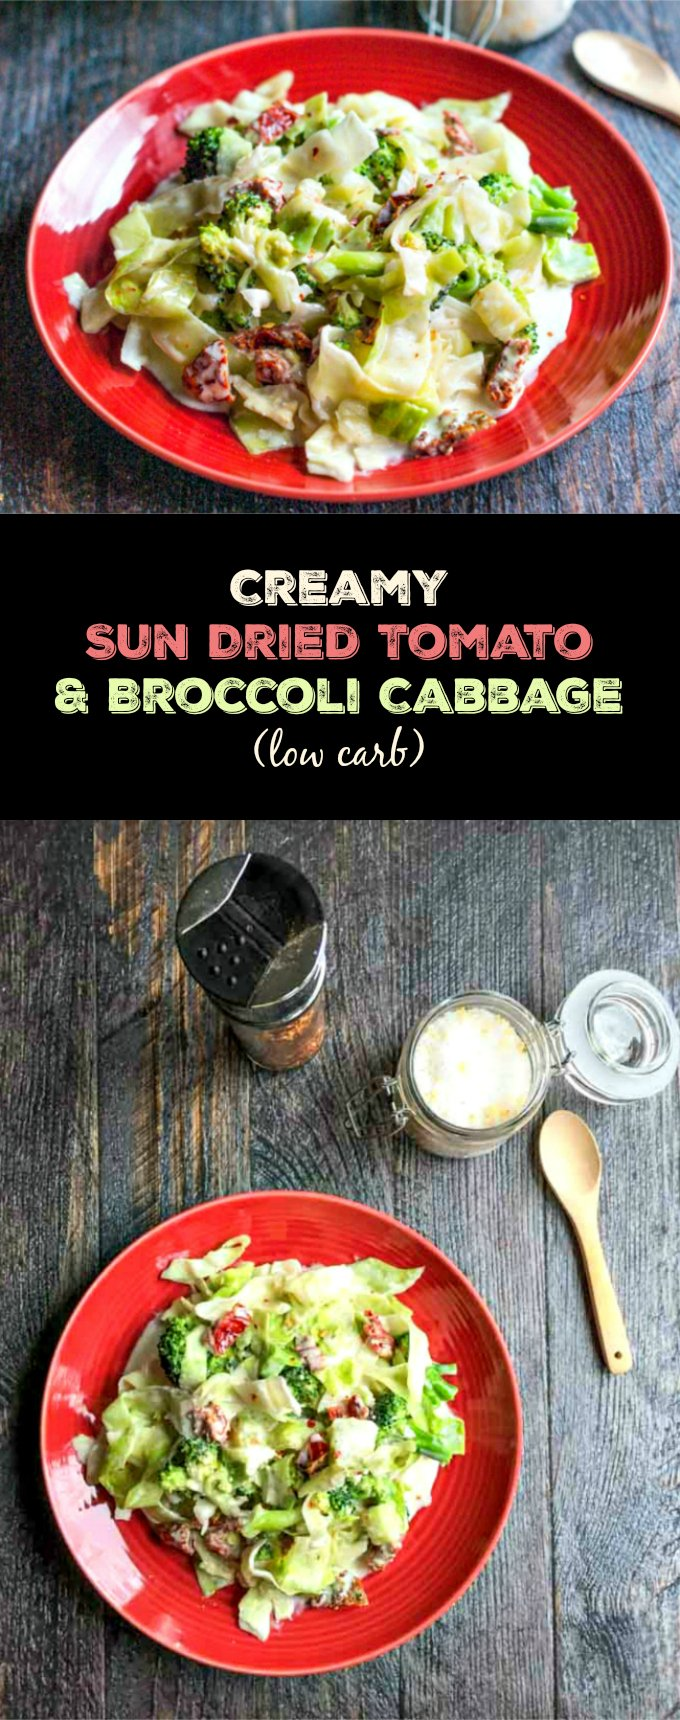 Creamy sun dried tomato & broccoli cabbage is an easy side dish to whip up or eat it as a main course. A great low carb alternative to pasta.